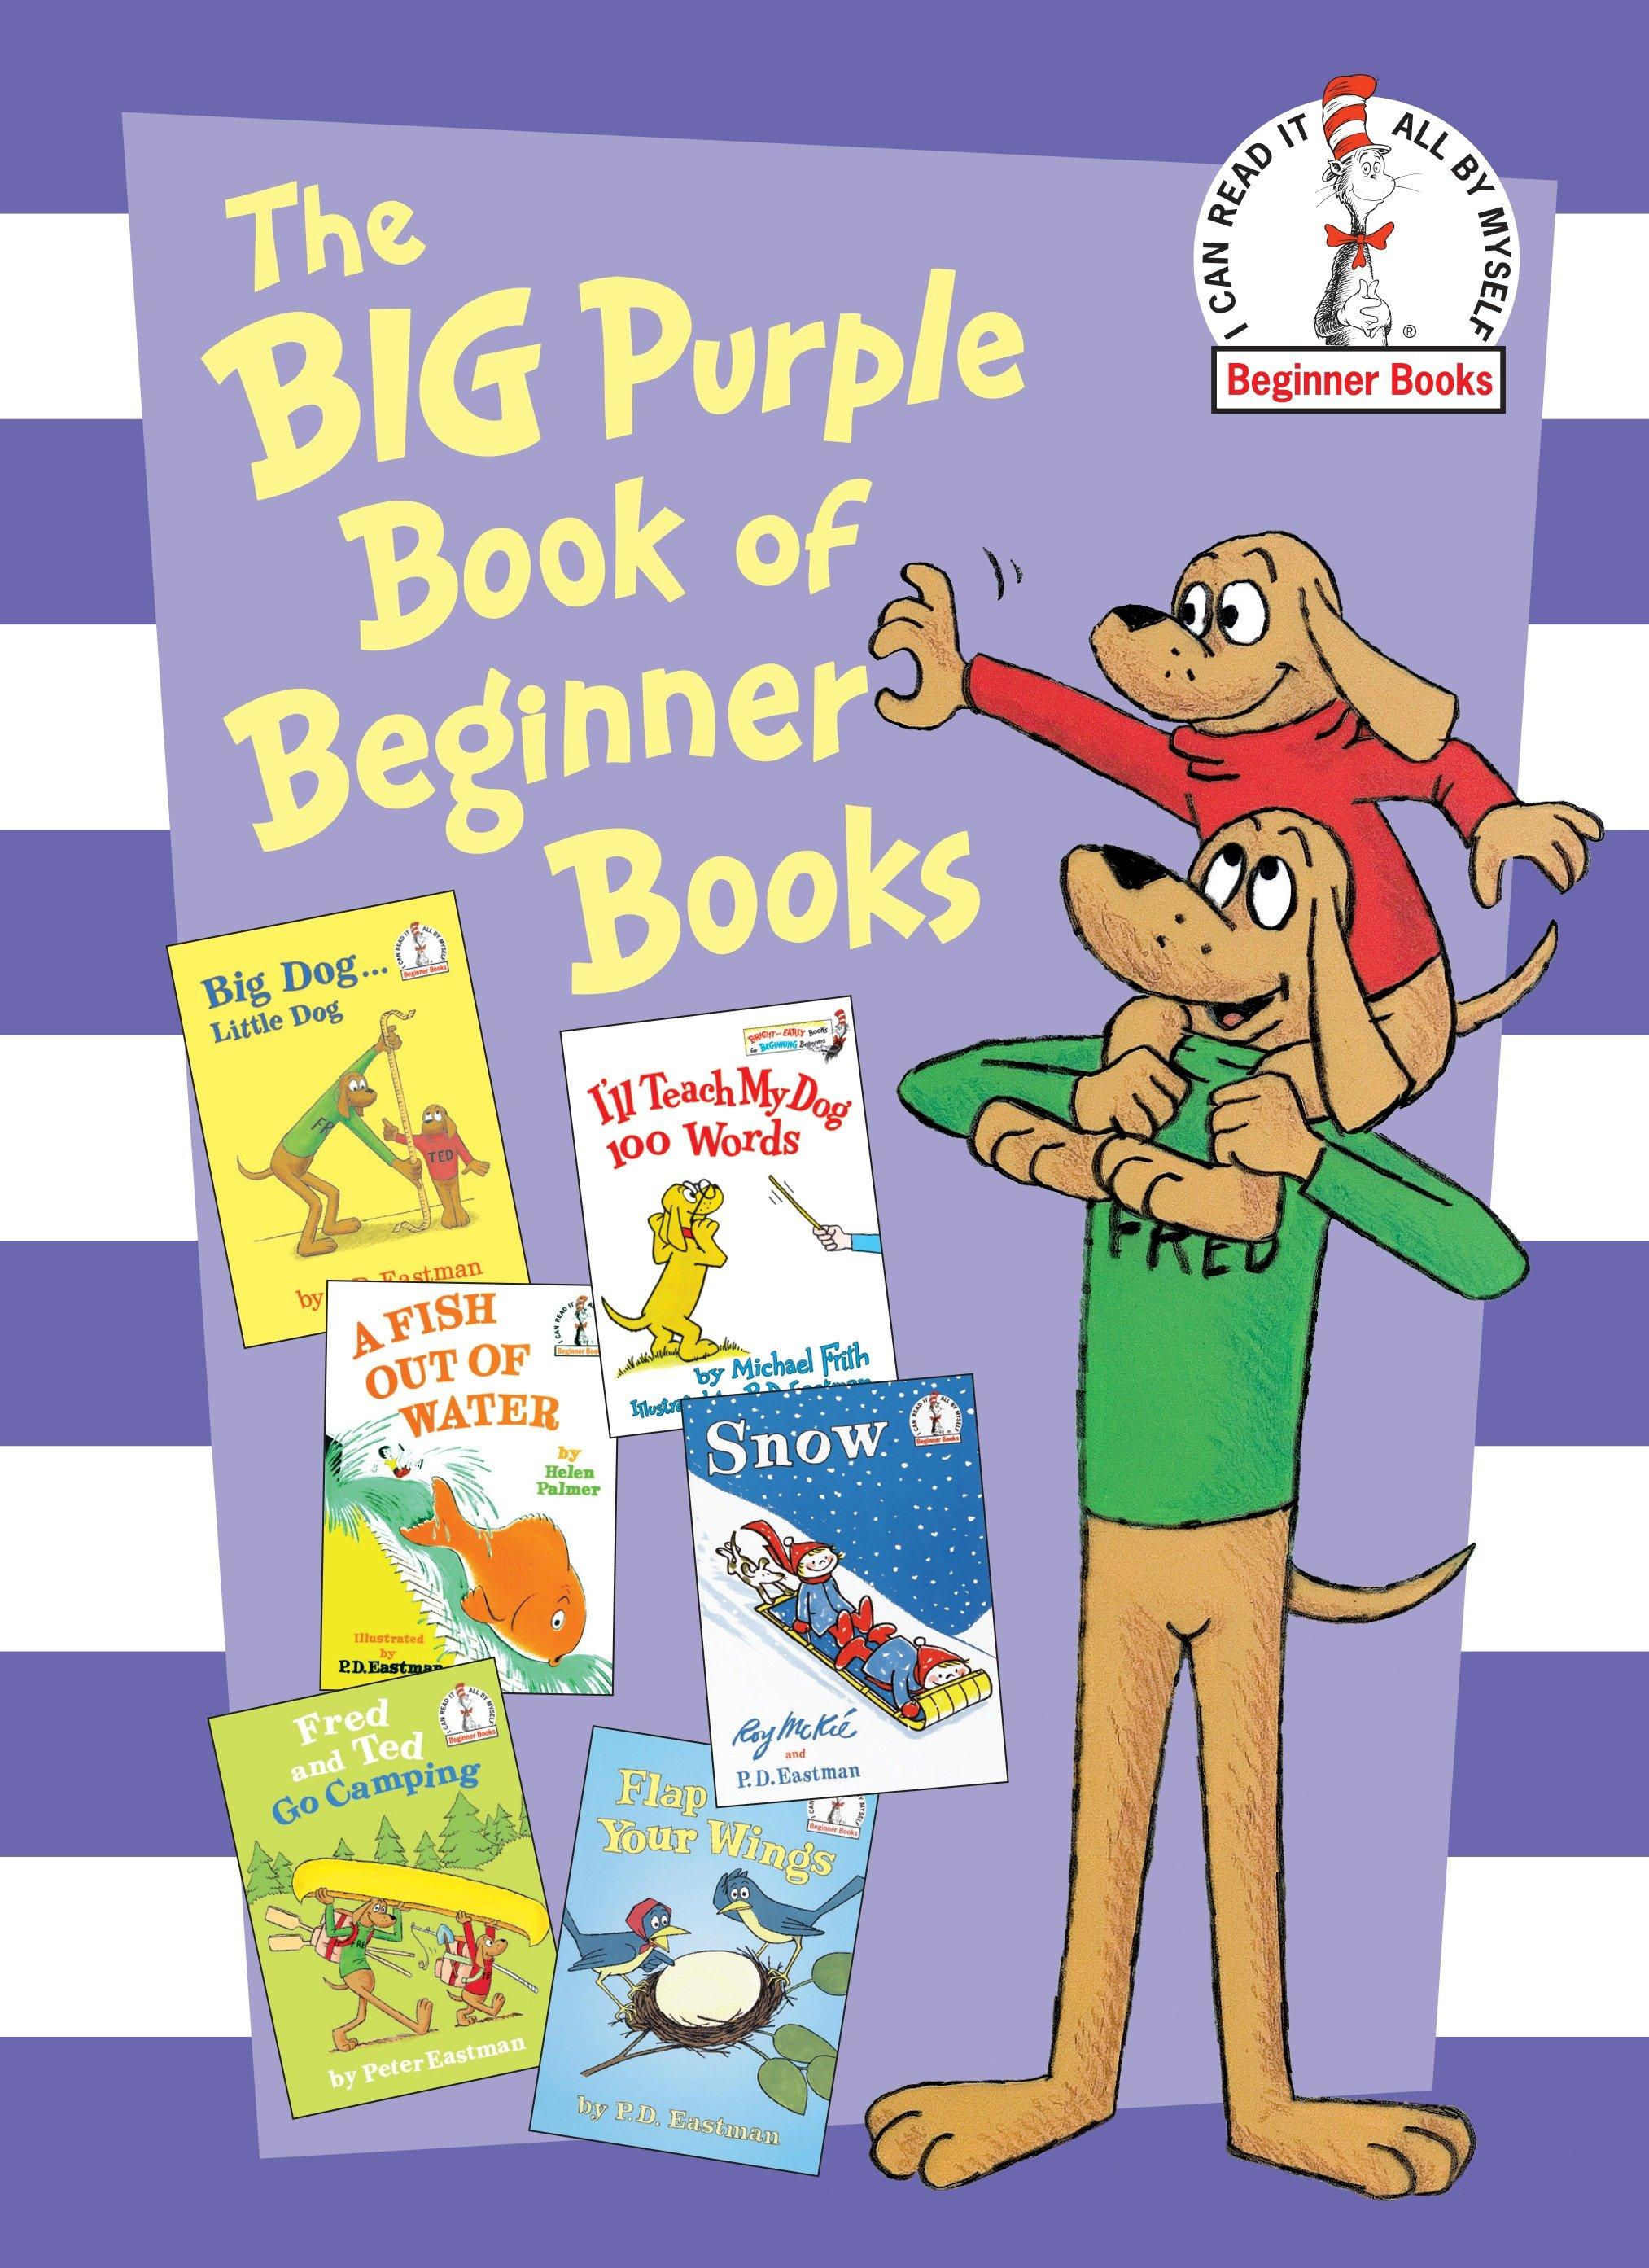 Big Purple Book of Beginner Books - Seuss, Dr.